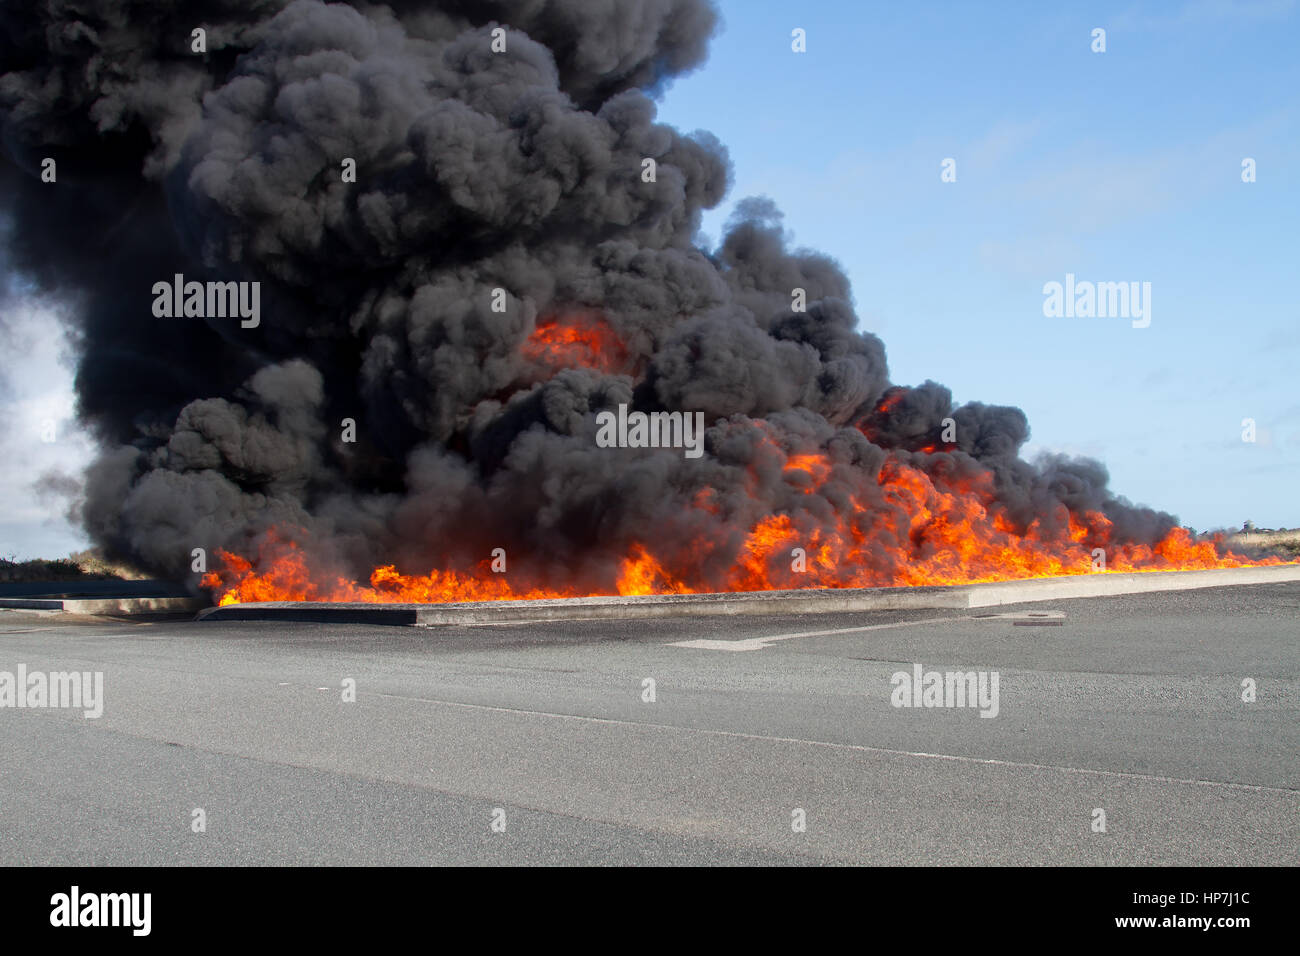 Aviation Fuel Fire - Stock Image